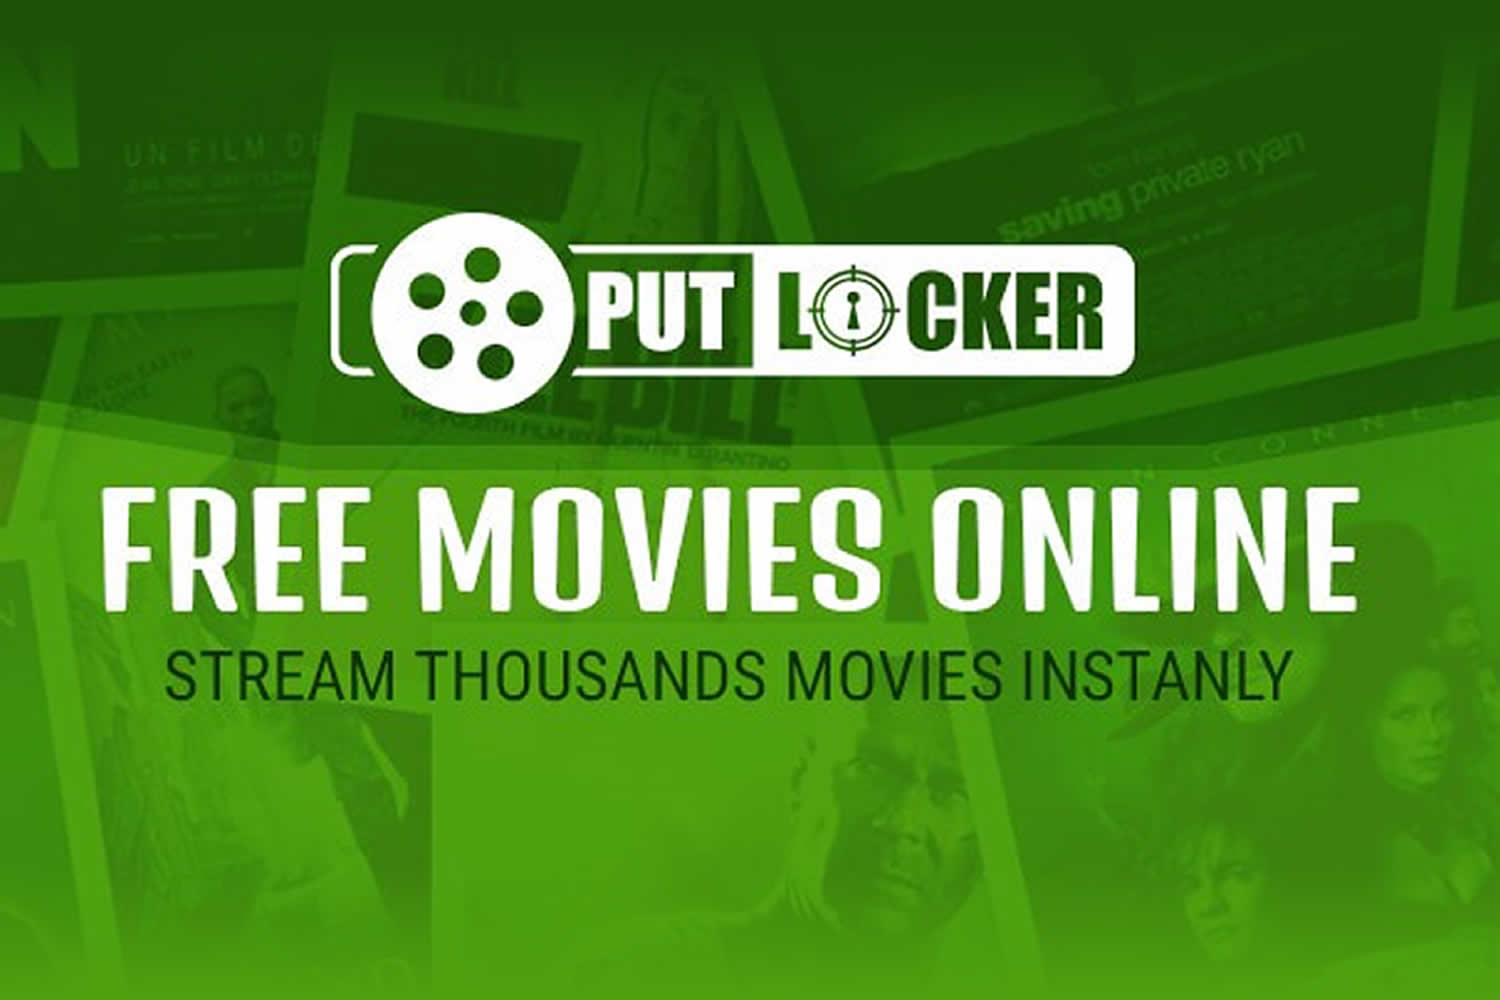 Watch From Headquarters Putlocker Movies